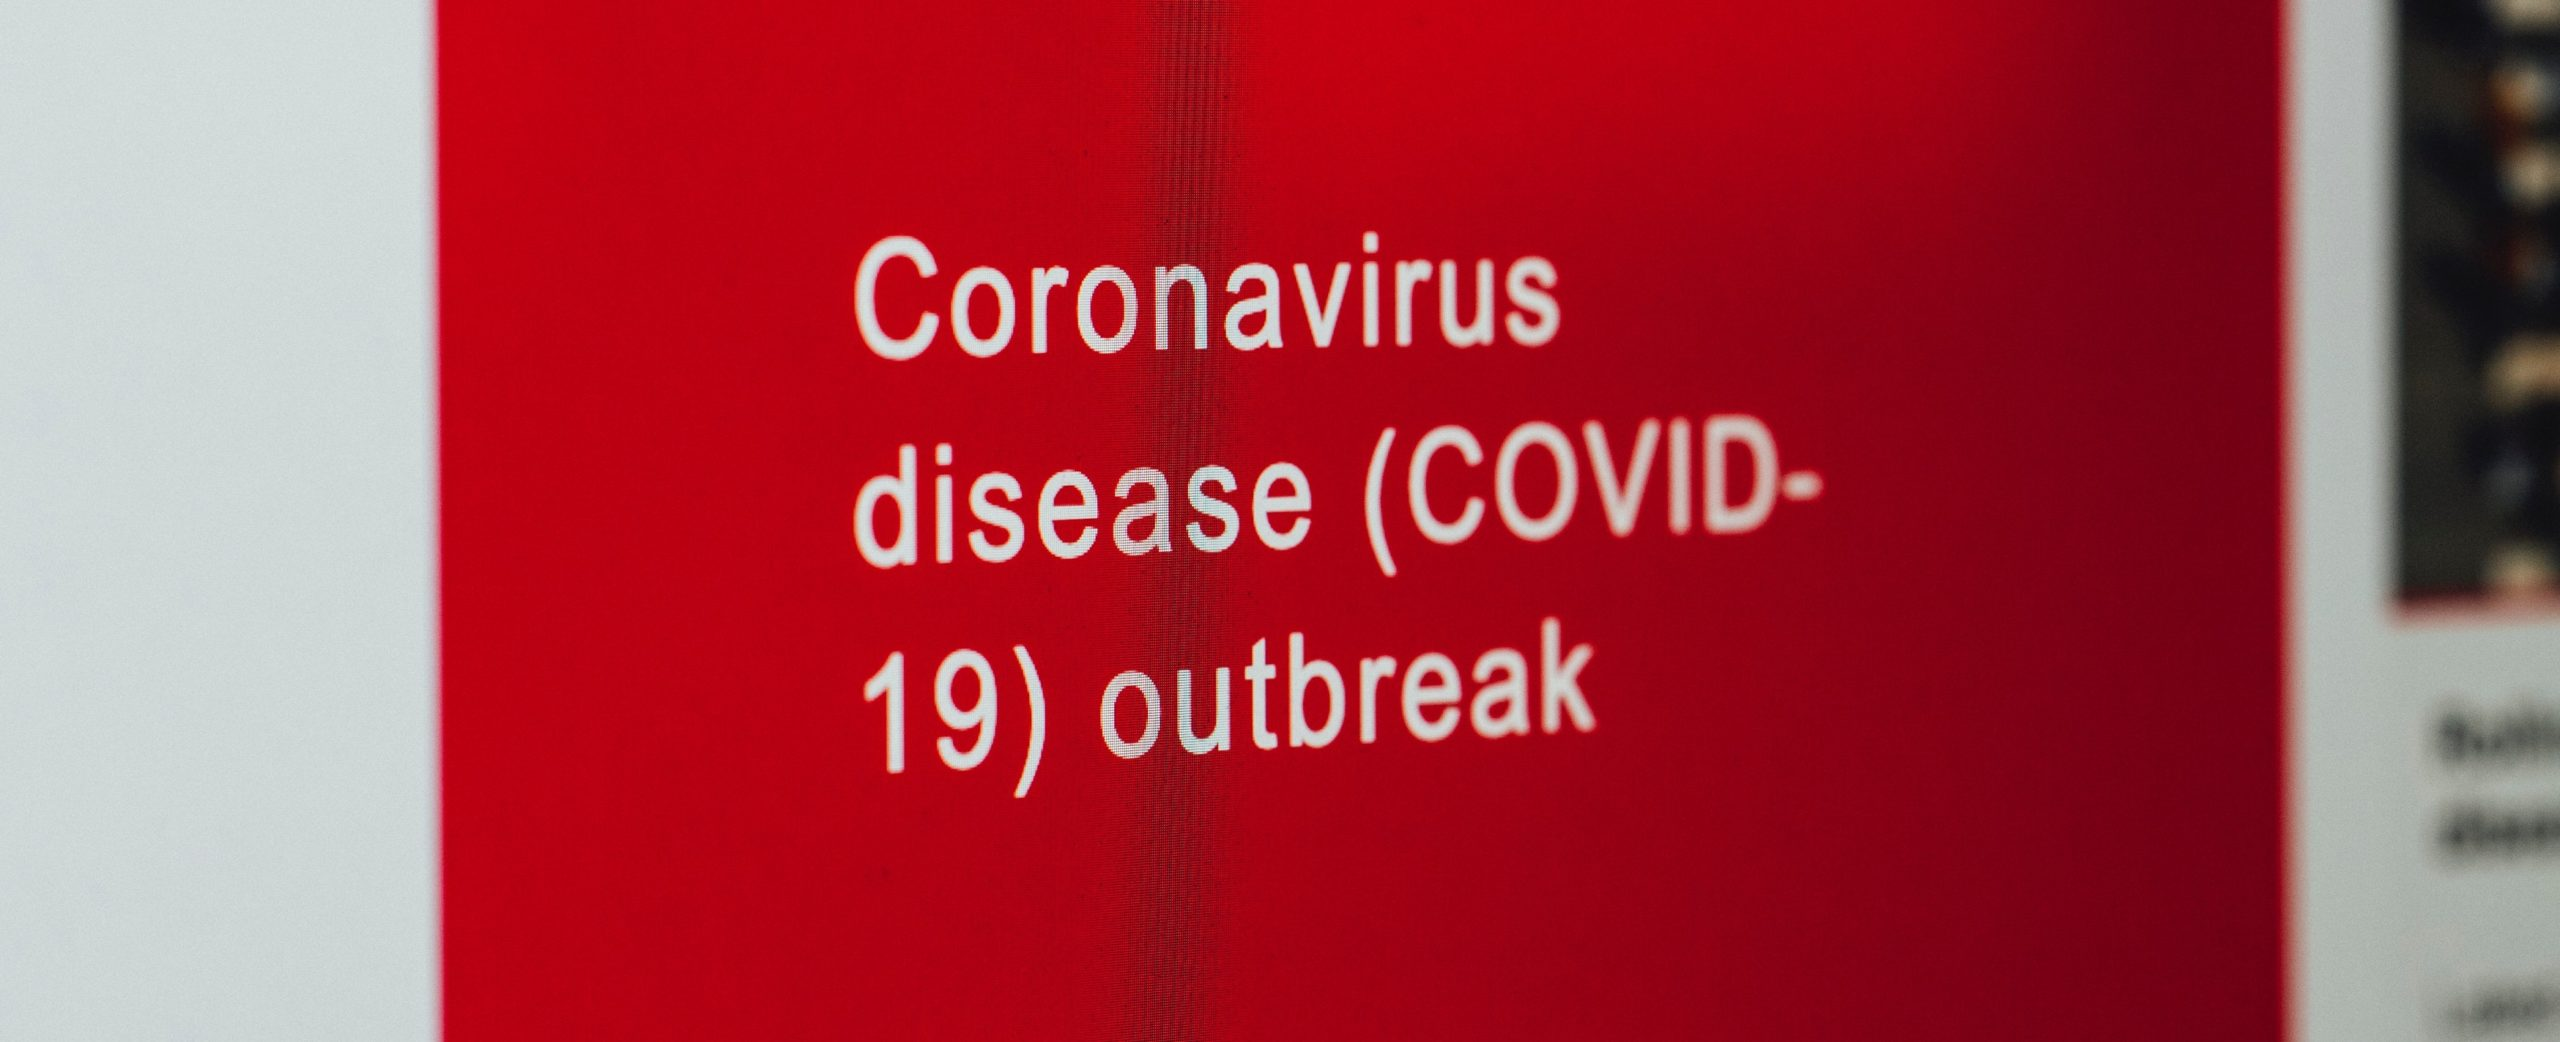 coronavirus-news-on-screen-3970332